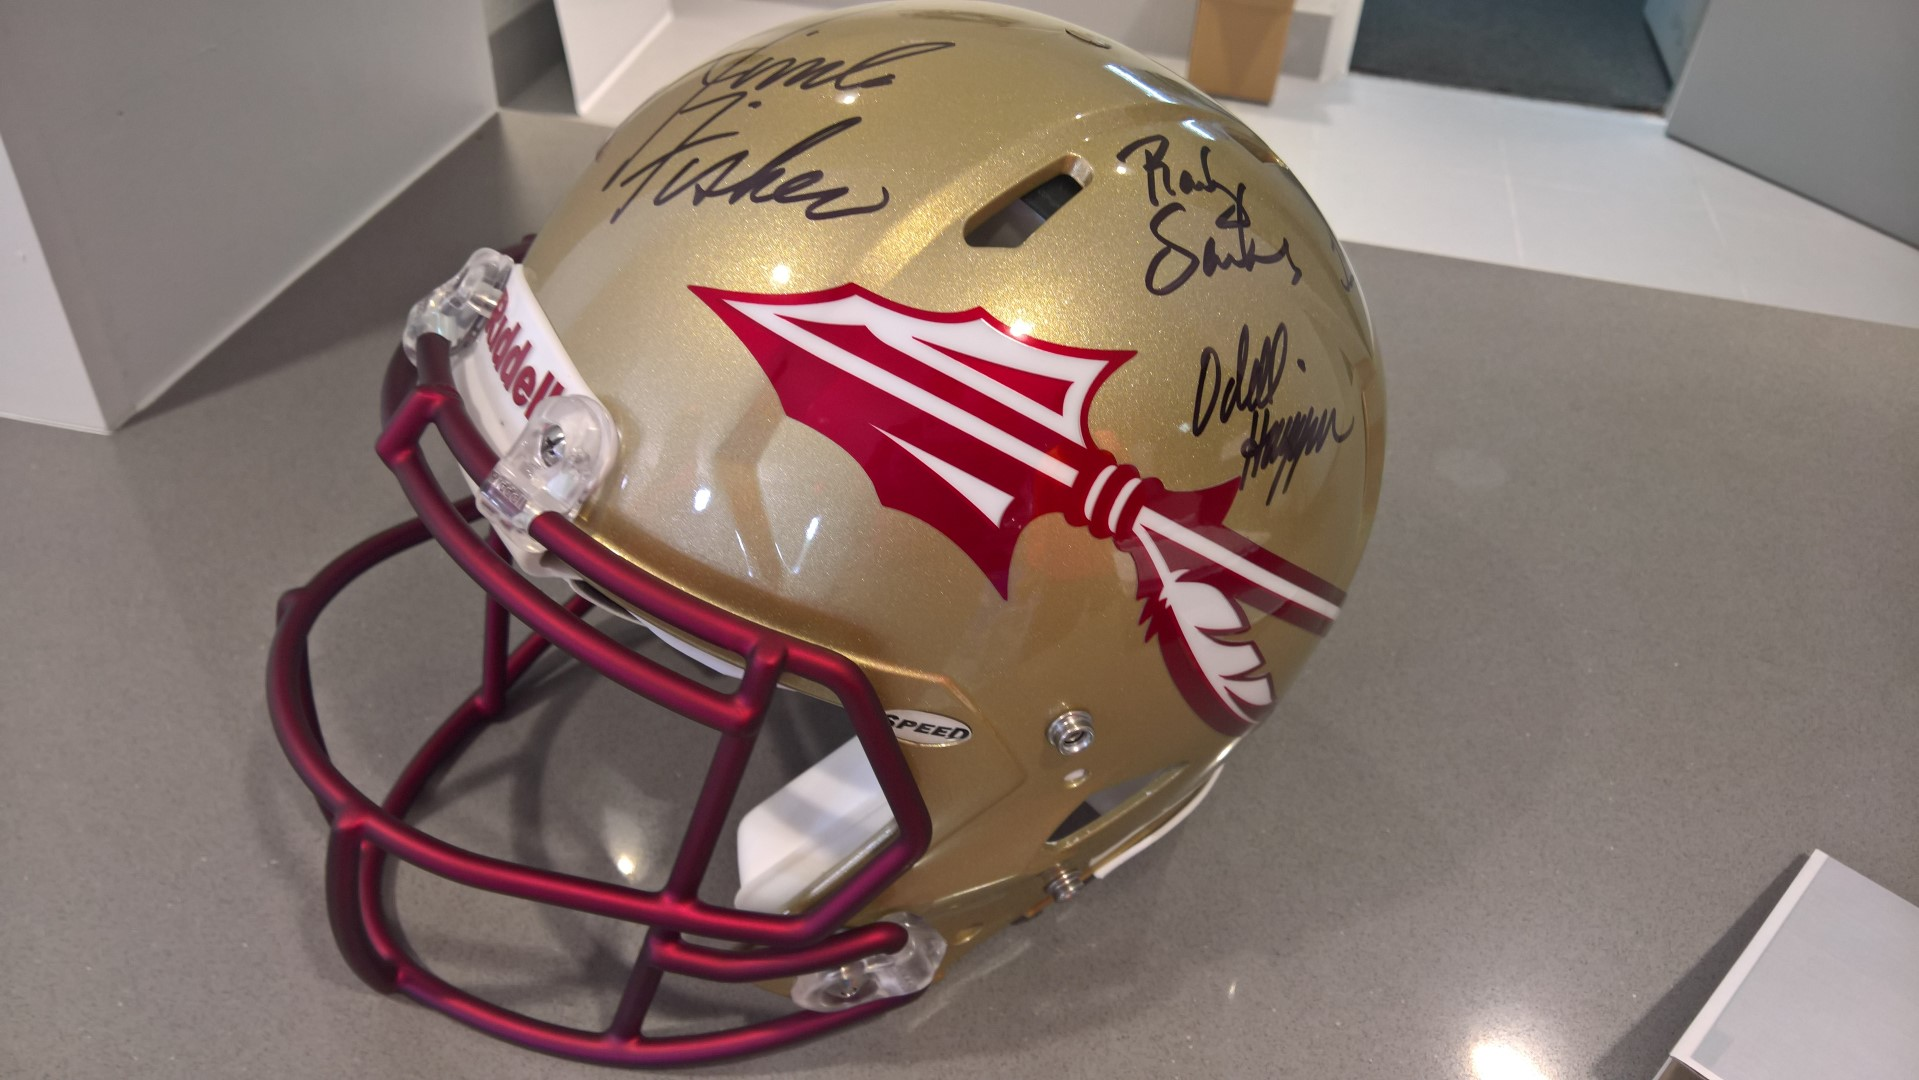 Signed Official Game Ready Florida State Seminoles Football Helmet